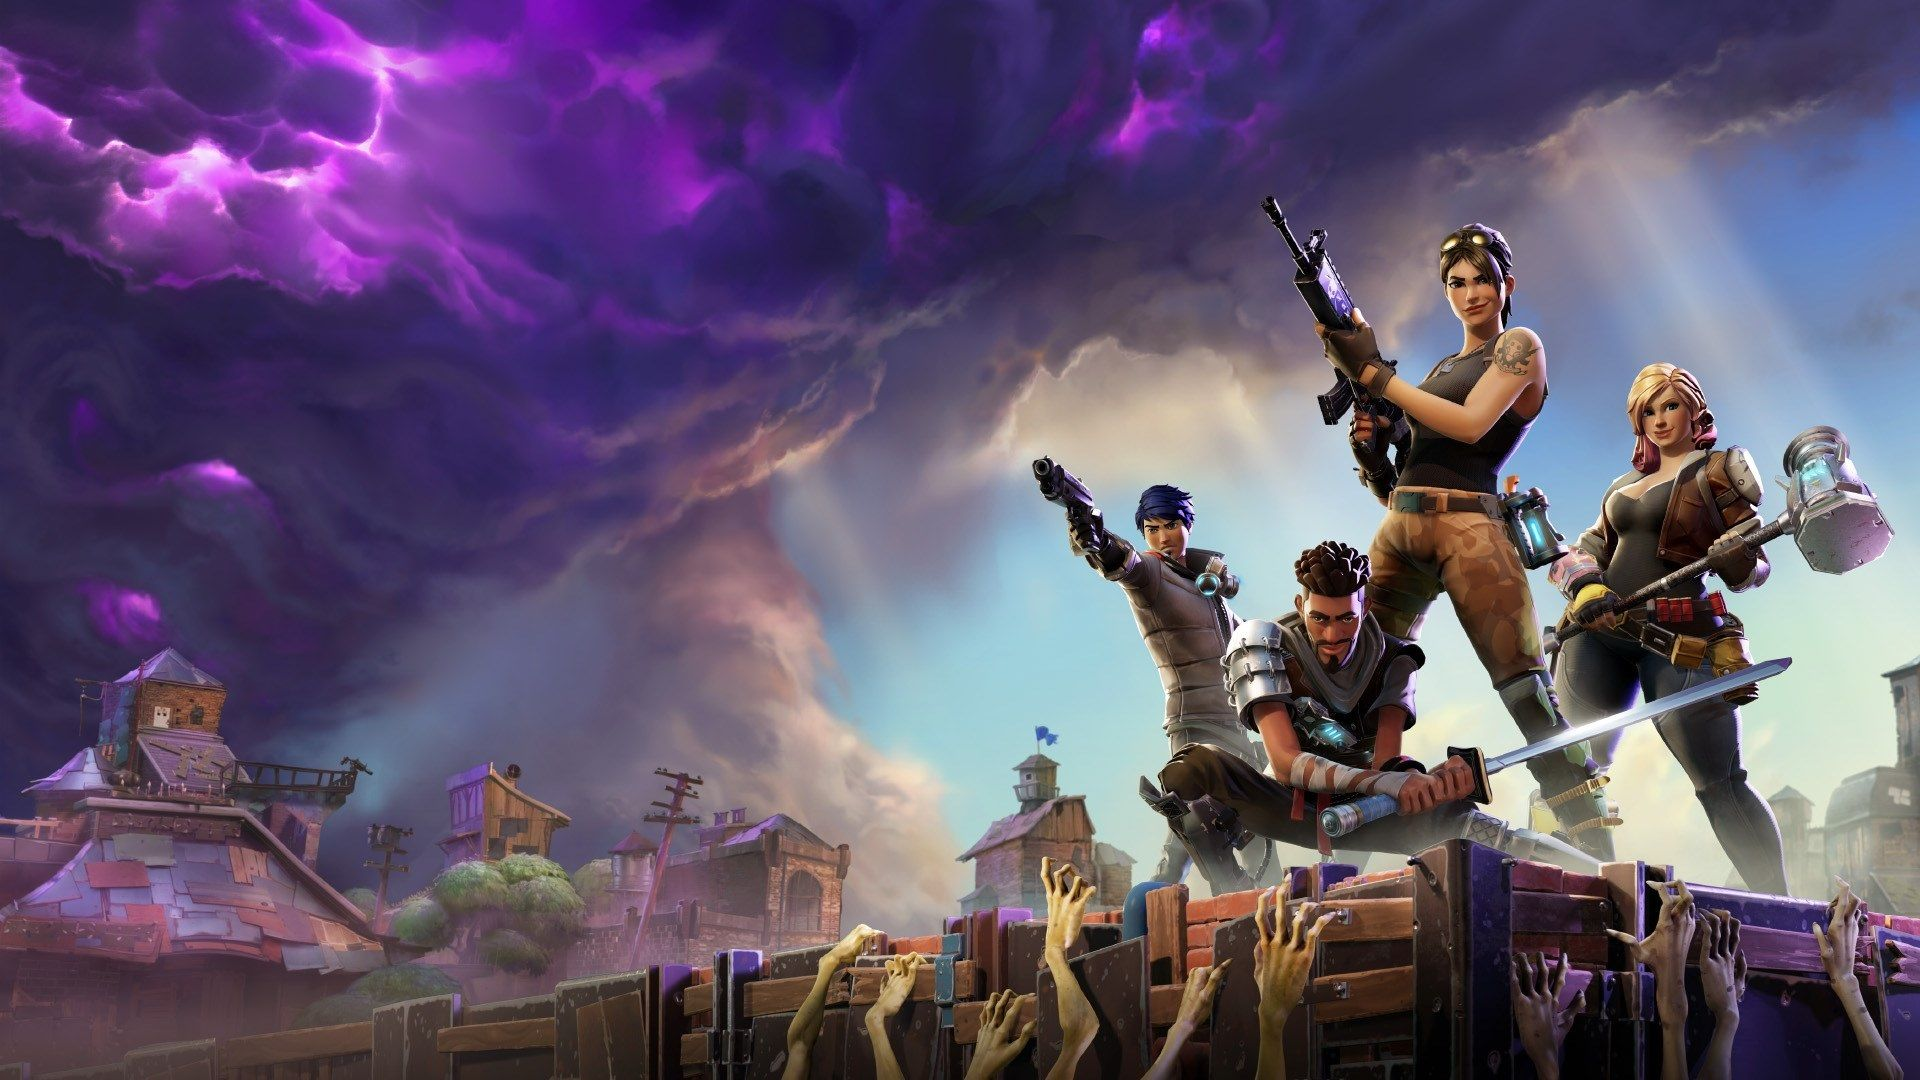 1920x1080 Fortnite Full Hd Background Fortnite Epic Games Gaming Wallpapers